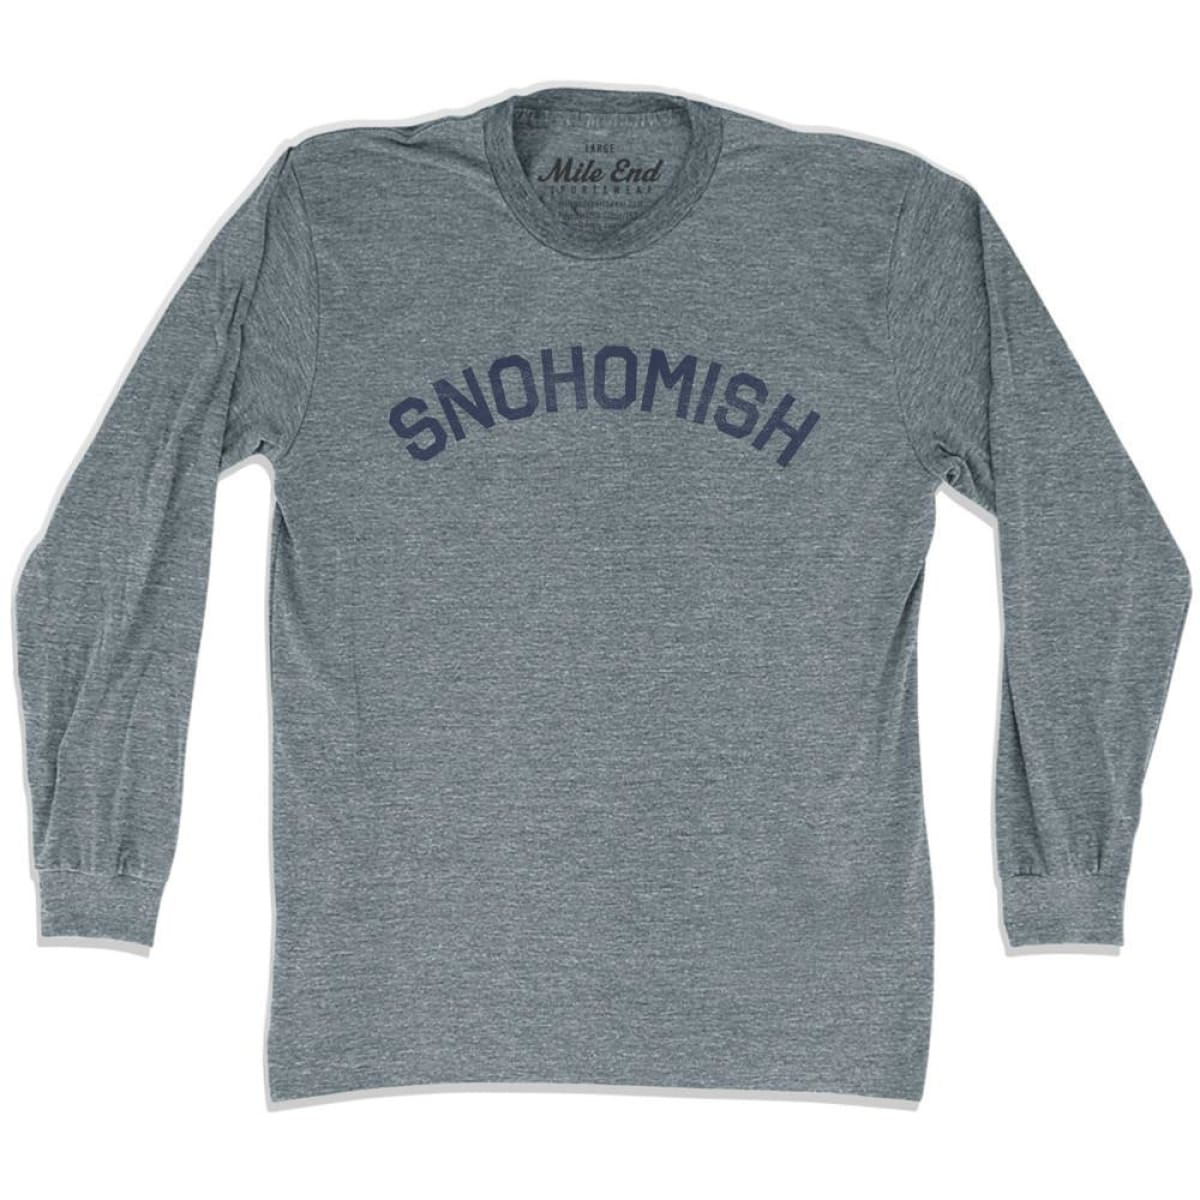 Snohomish City Vintage Long Sleeve T-shirt - Athletic Grey / Adult X-Small - Mile End City